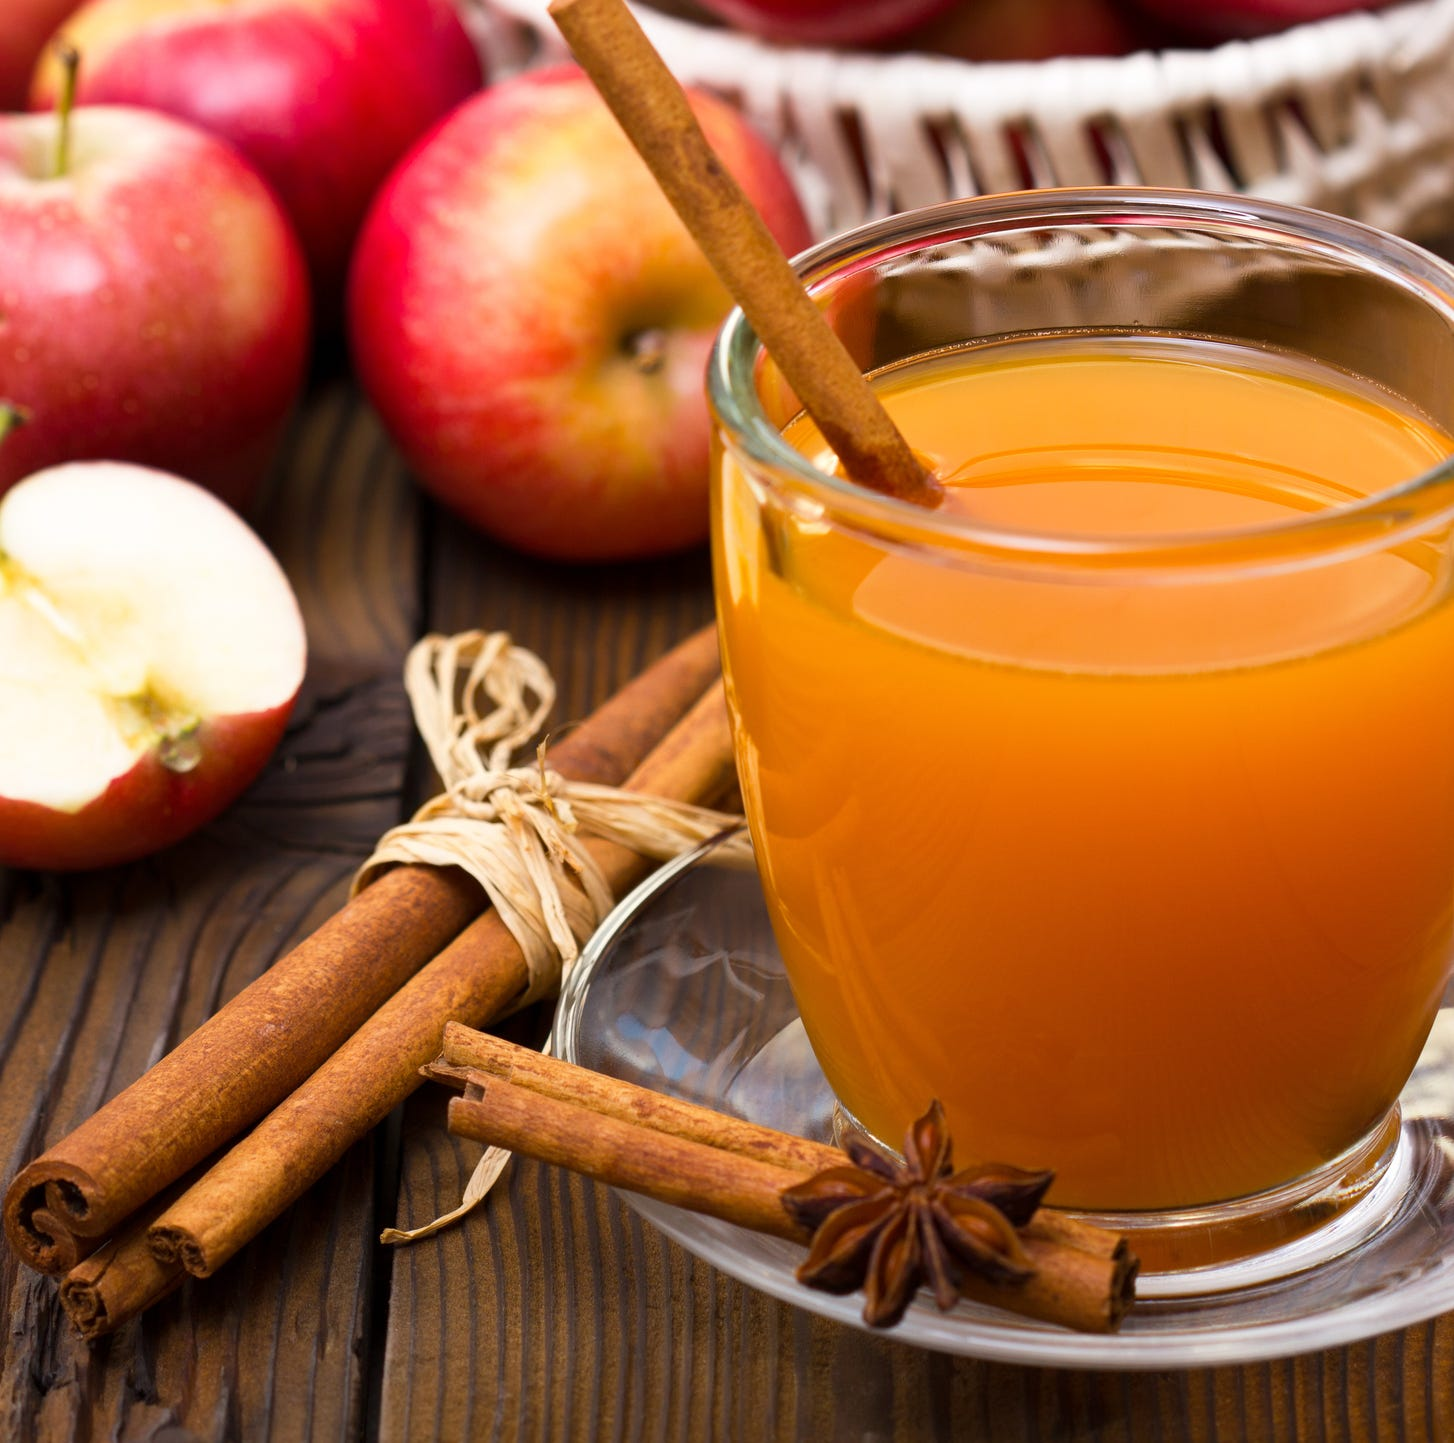 Hot apple cider is a fall favorite among 321 Flavor: Where Brevard Eats members.